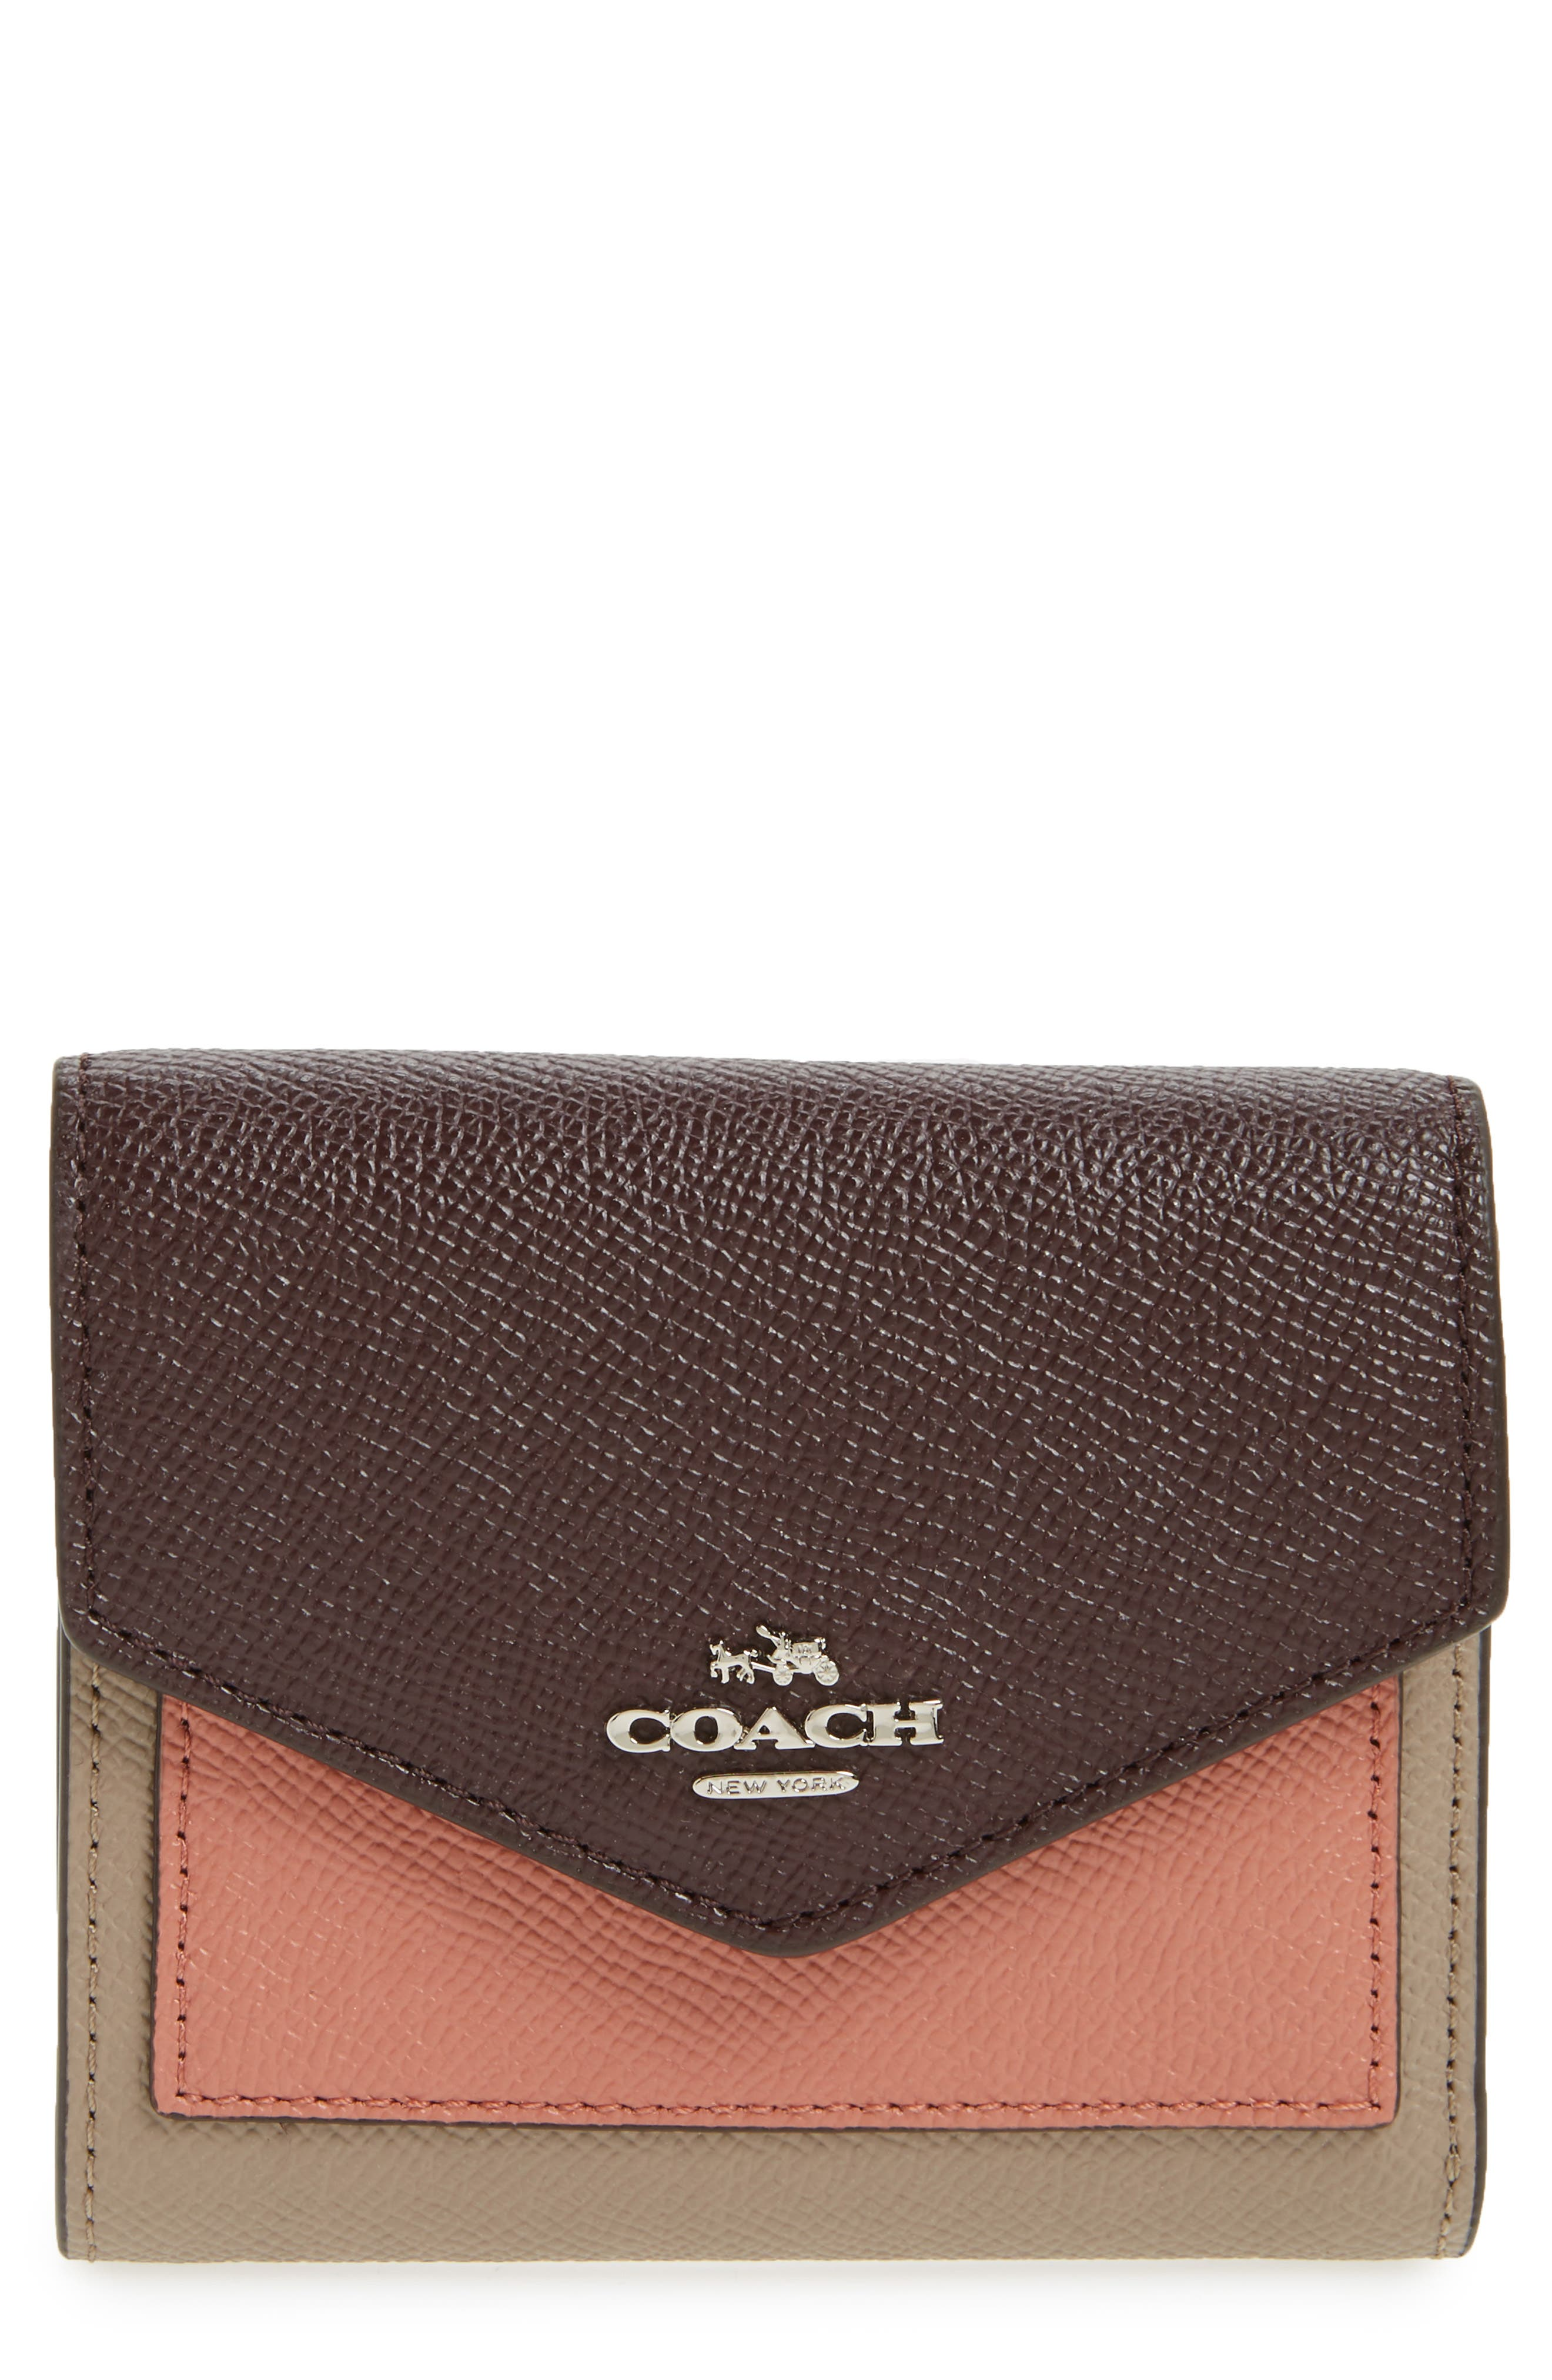 Small Colorblock Calfskin Leather Wallet,                             Main thumbnail 1, color,                             029